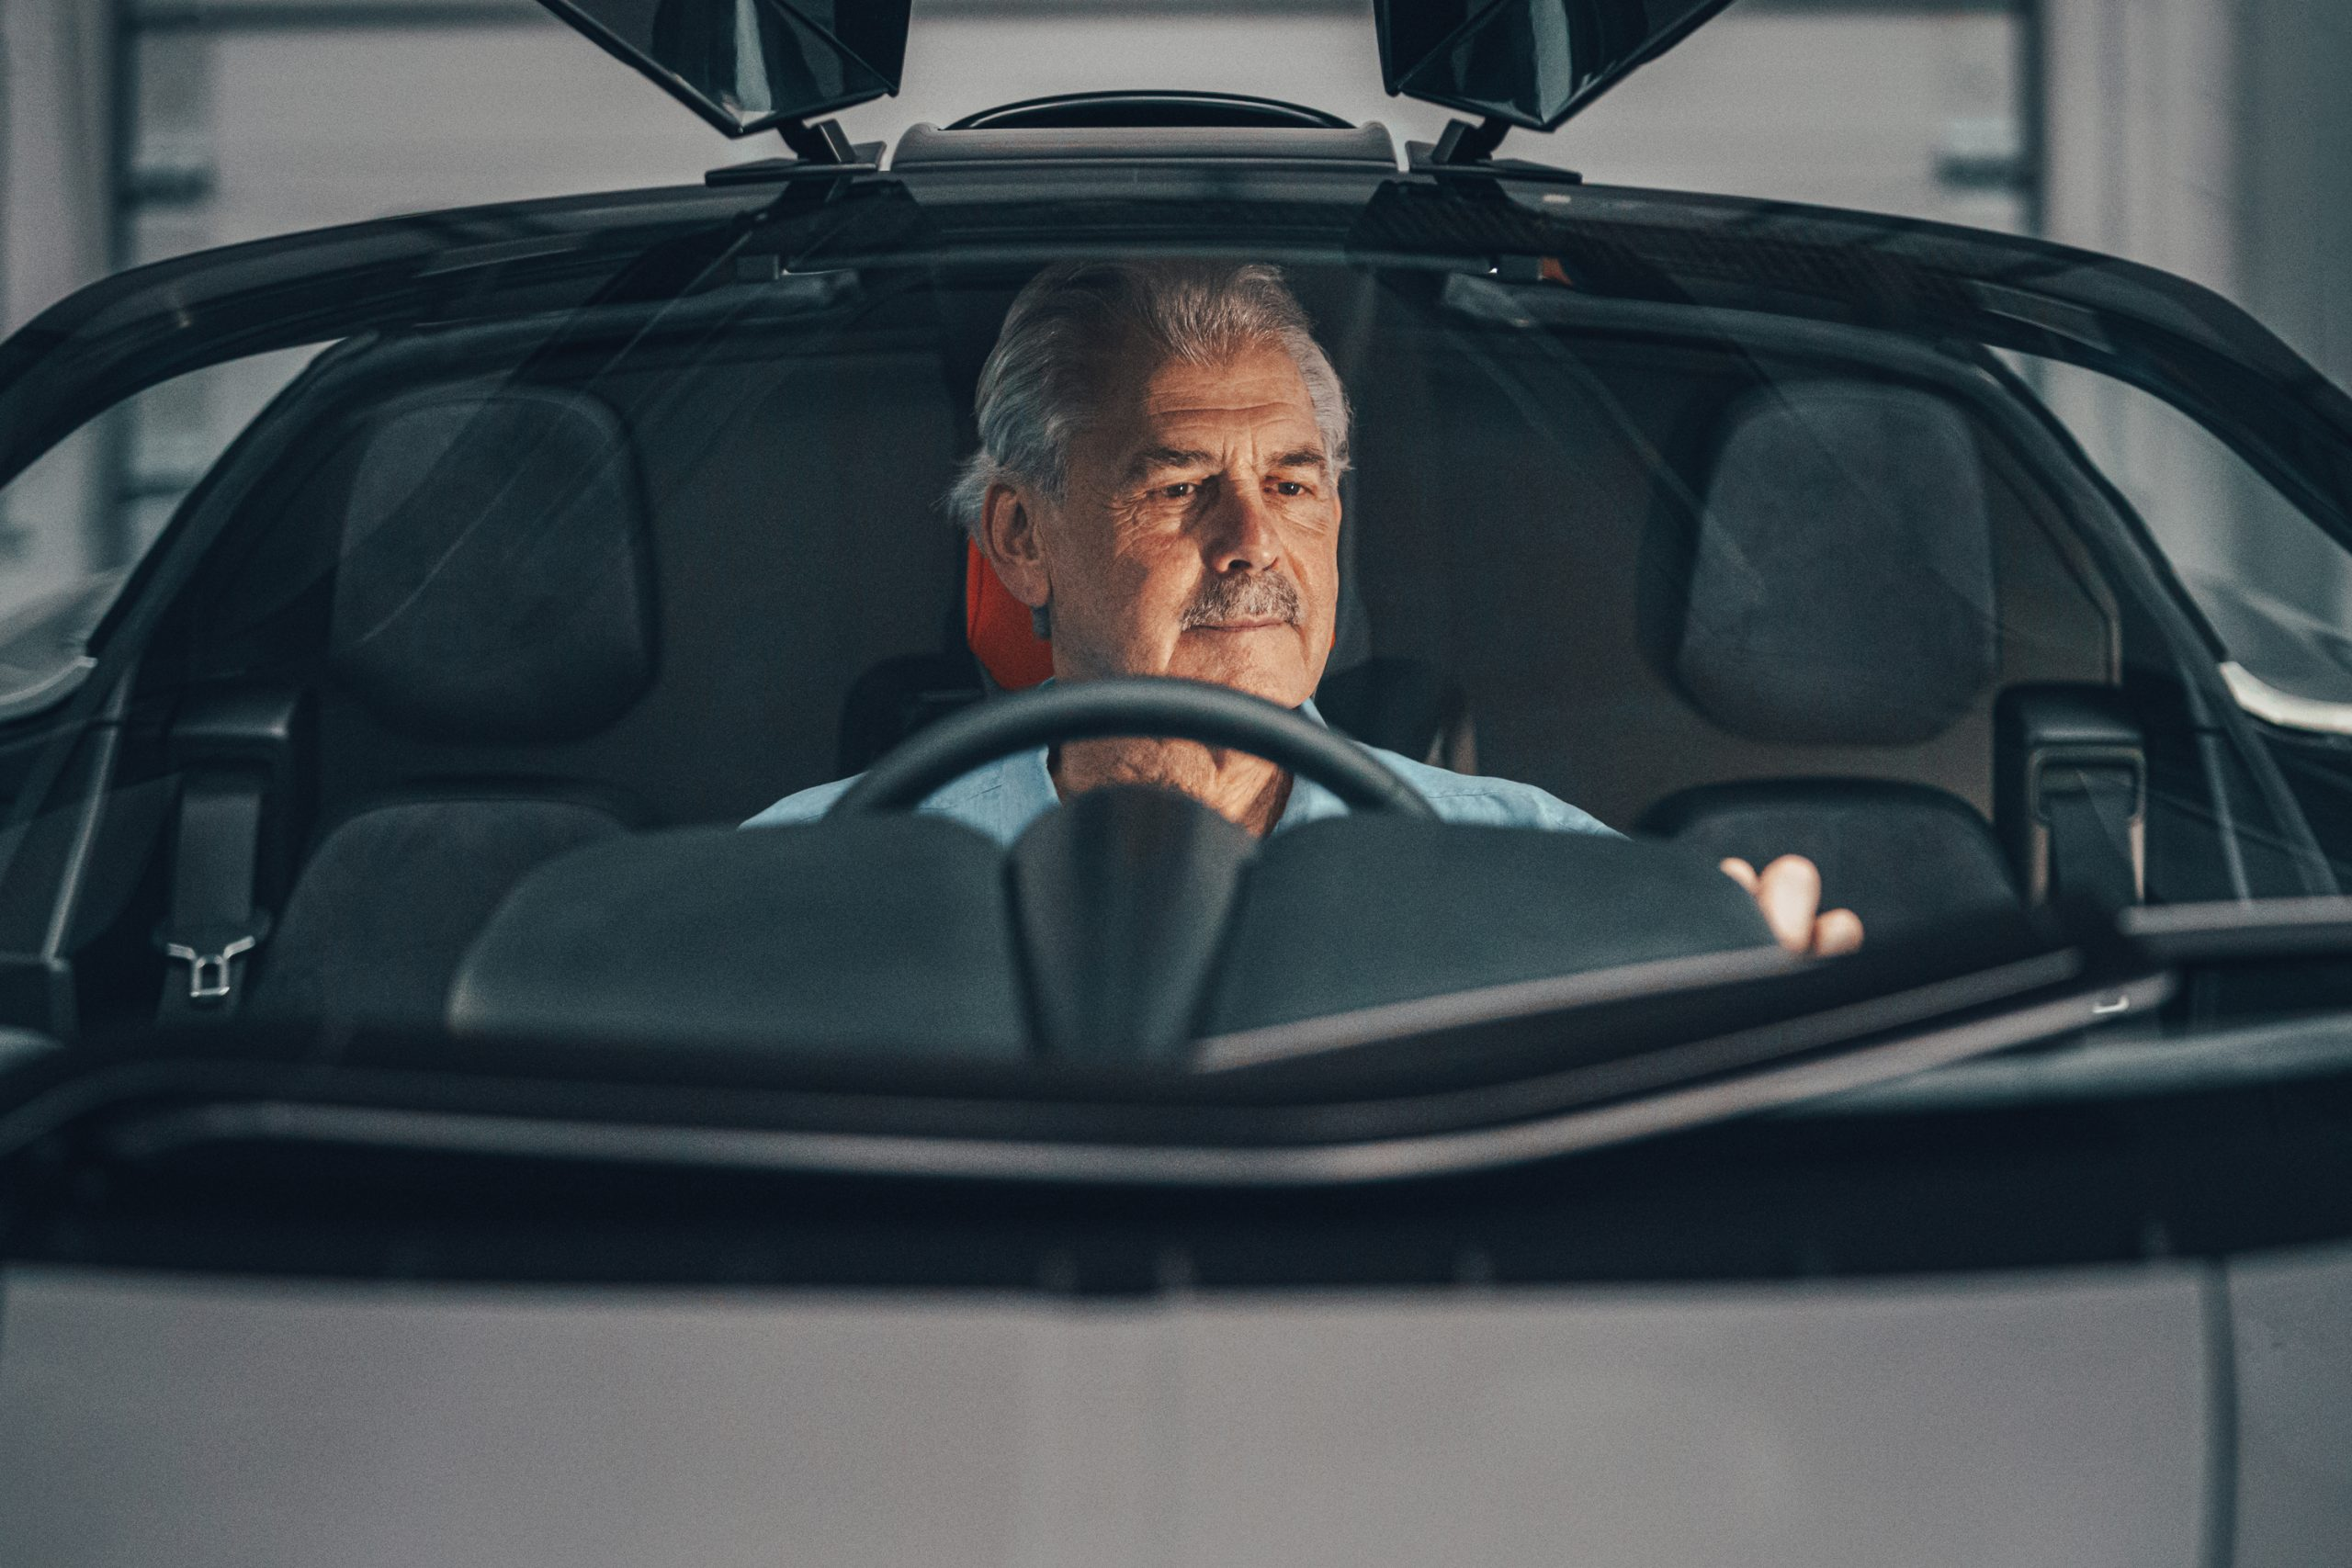 T50 gordon murray behind wheel